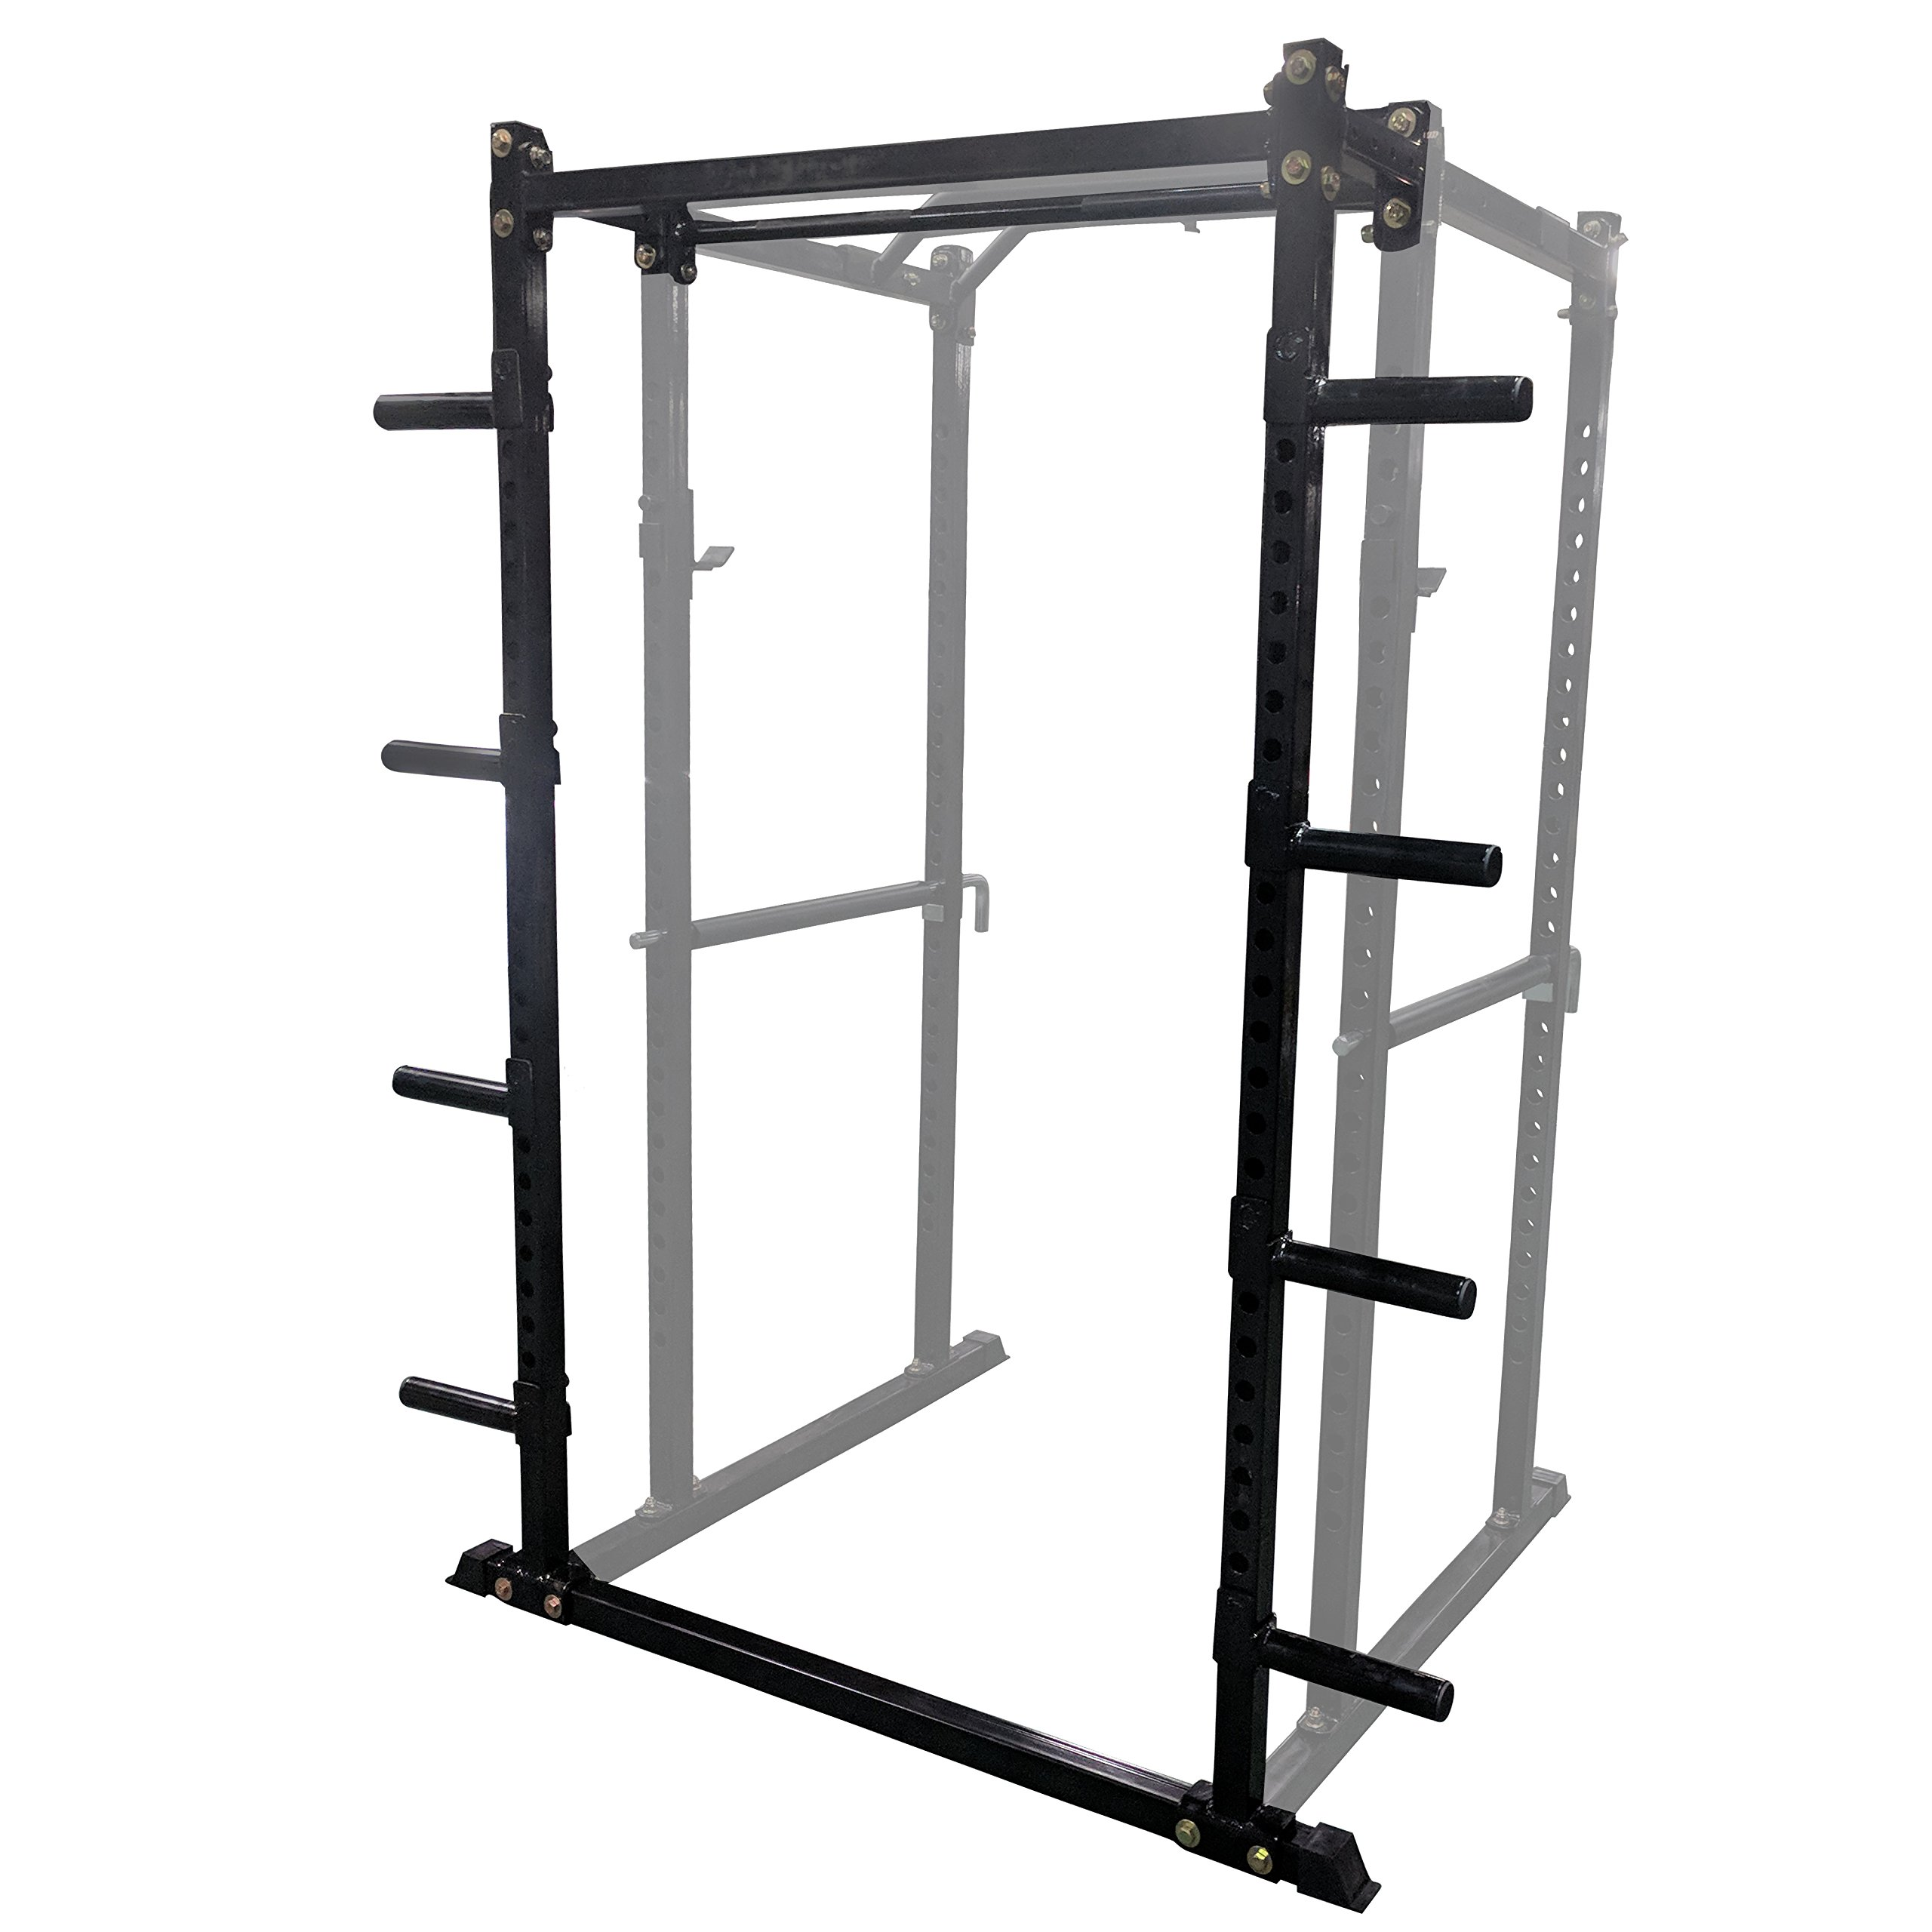 Titan 10'' Extension Kit for T-2 Power Rack by Titan Fitness